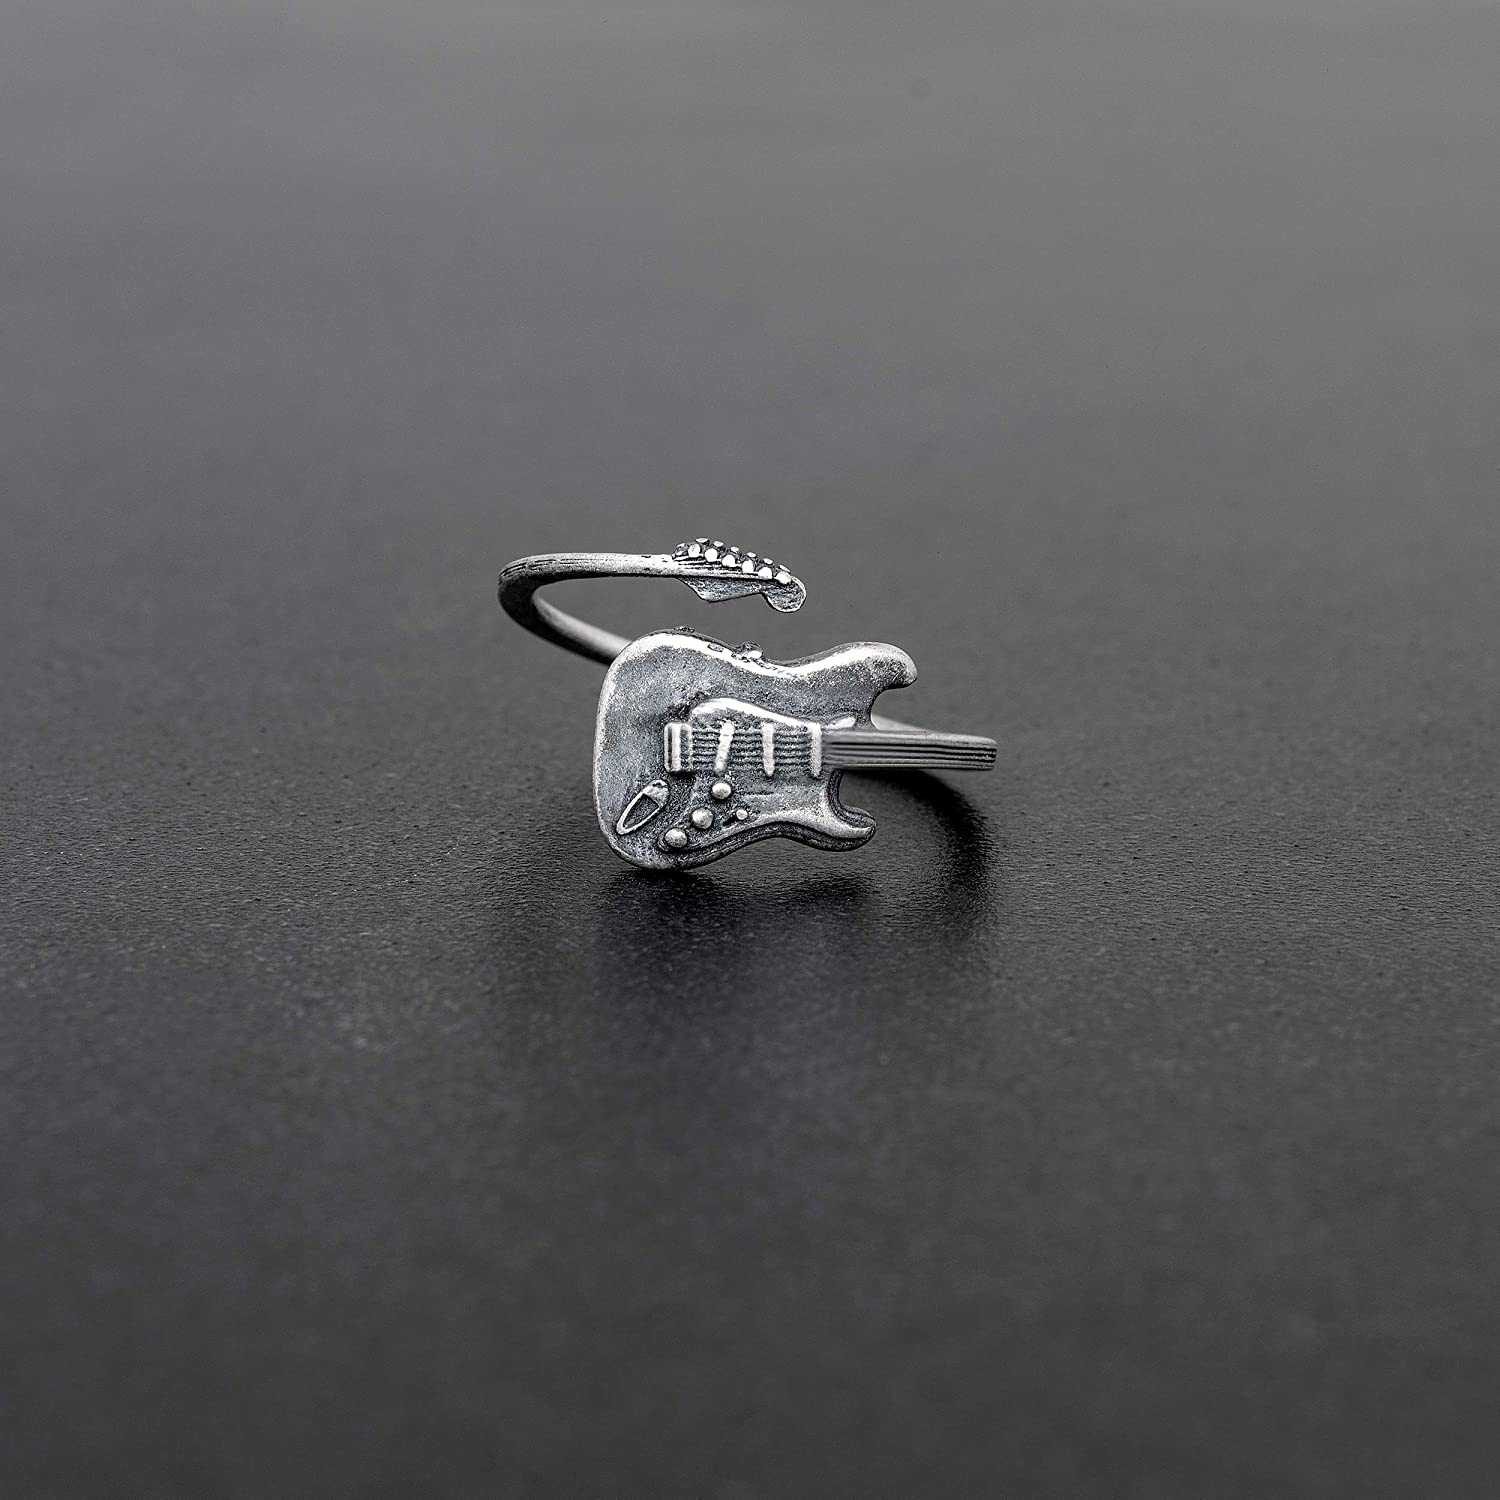 Musician 925 Sterling Silver Guitar Wrap RingAdjustable Size 7-12